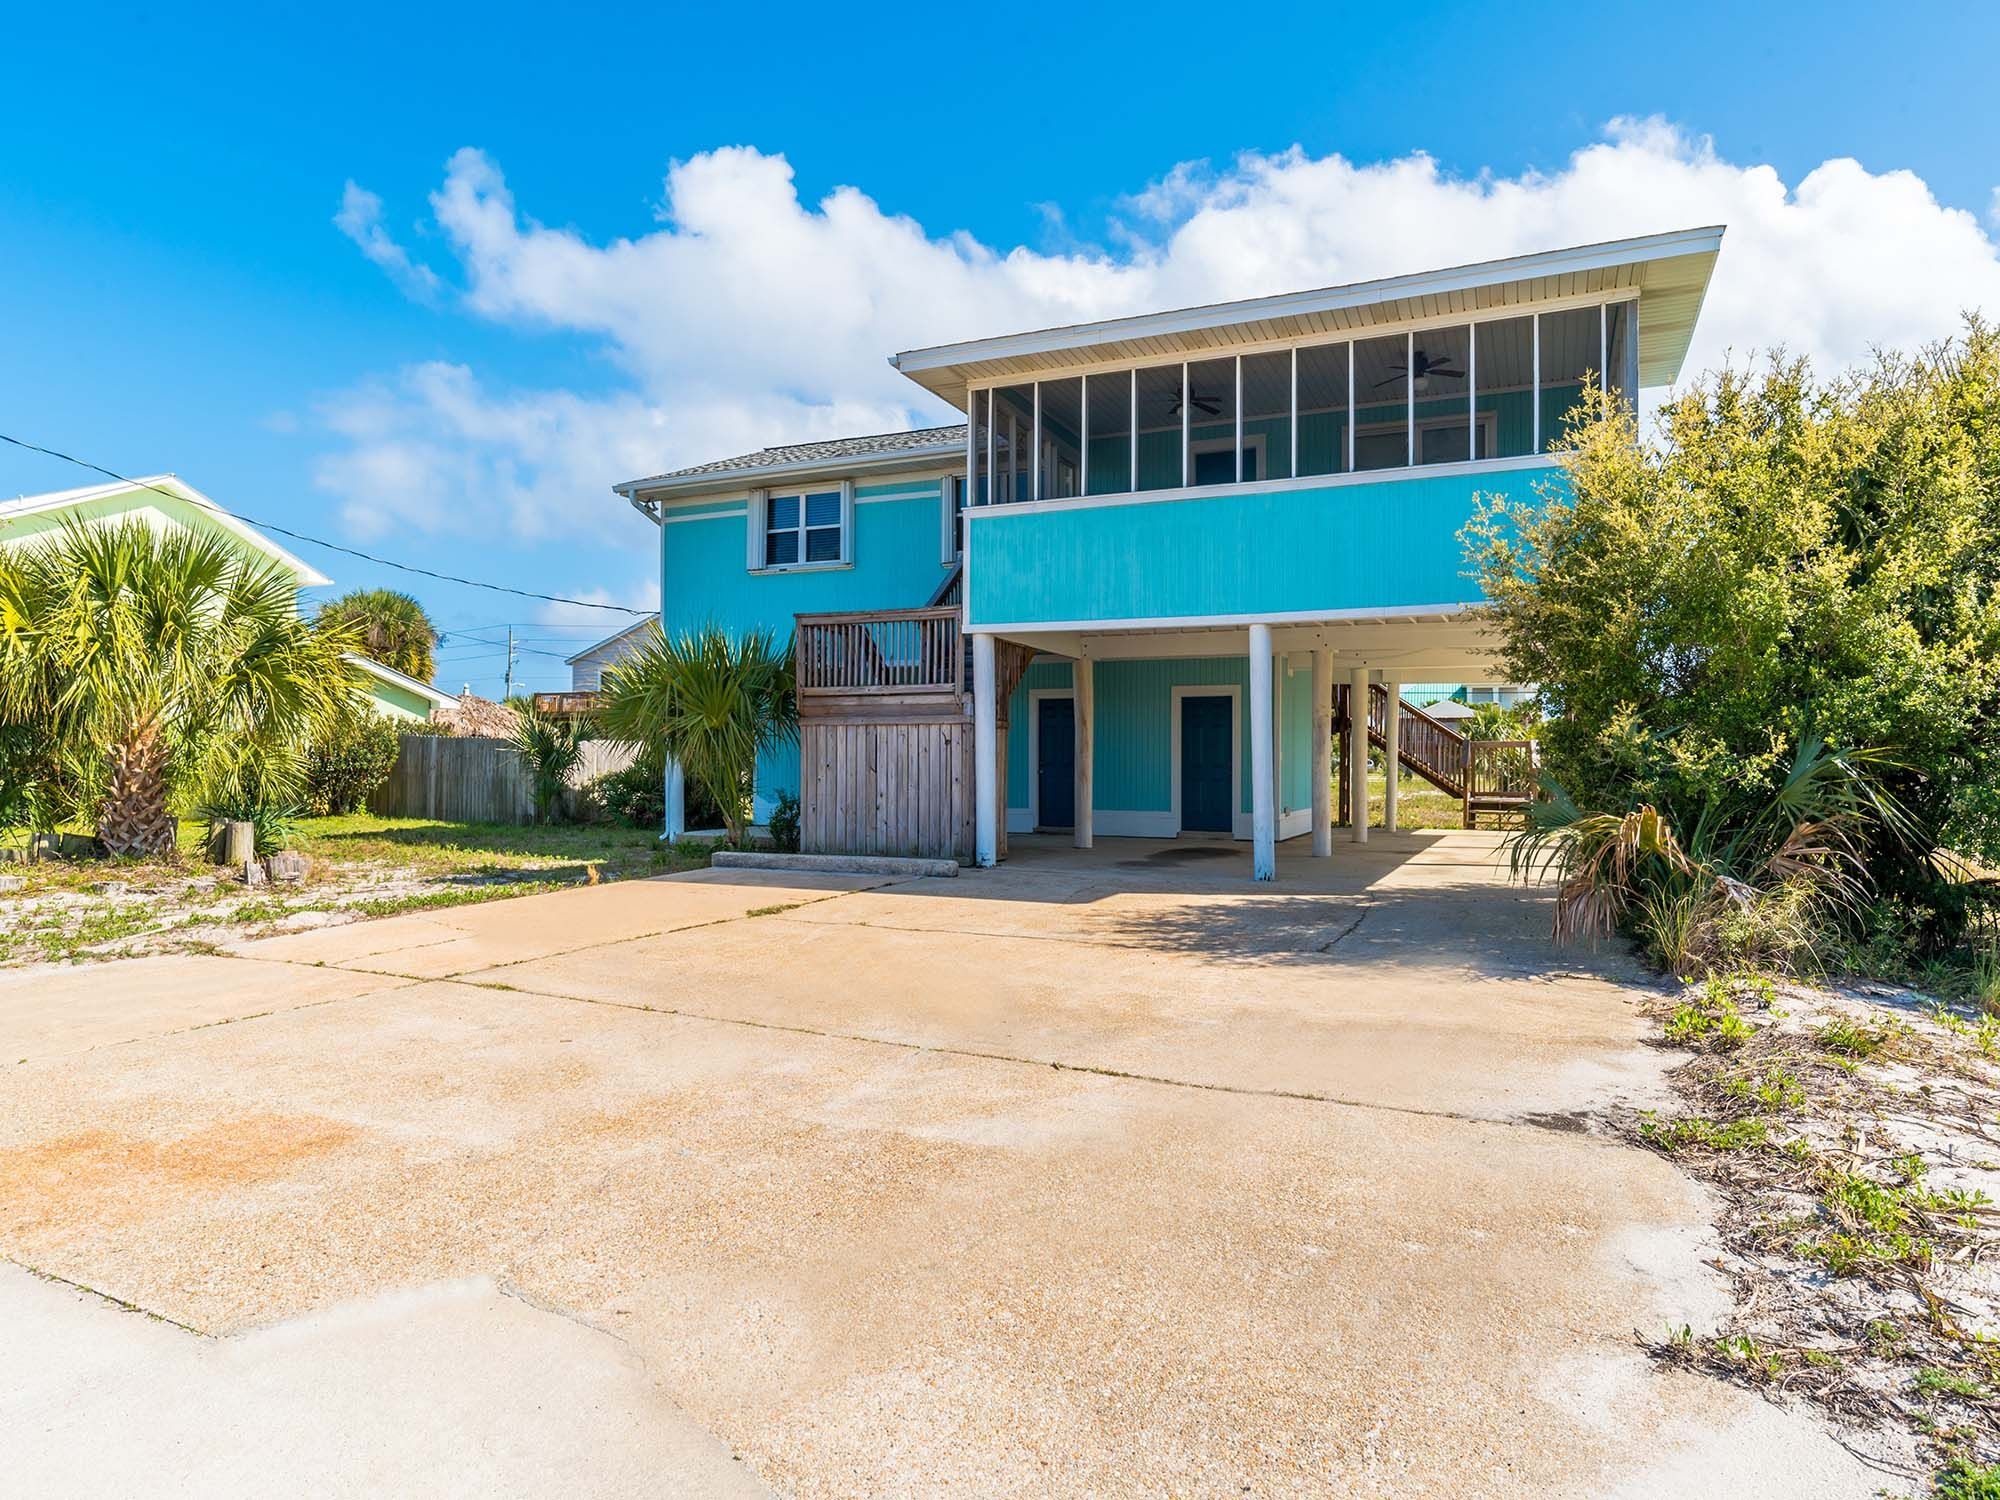 Soundview Retreat Pensacola Beach Vacation Home 3b 2b